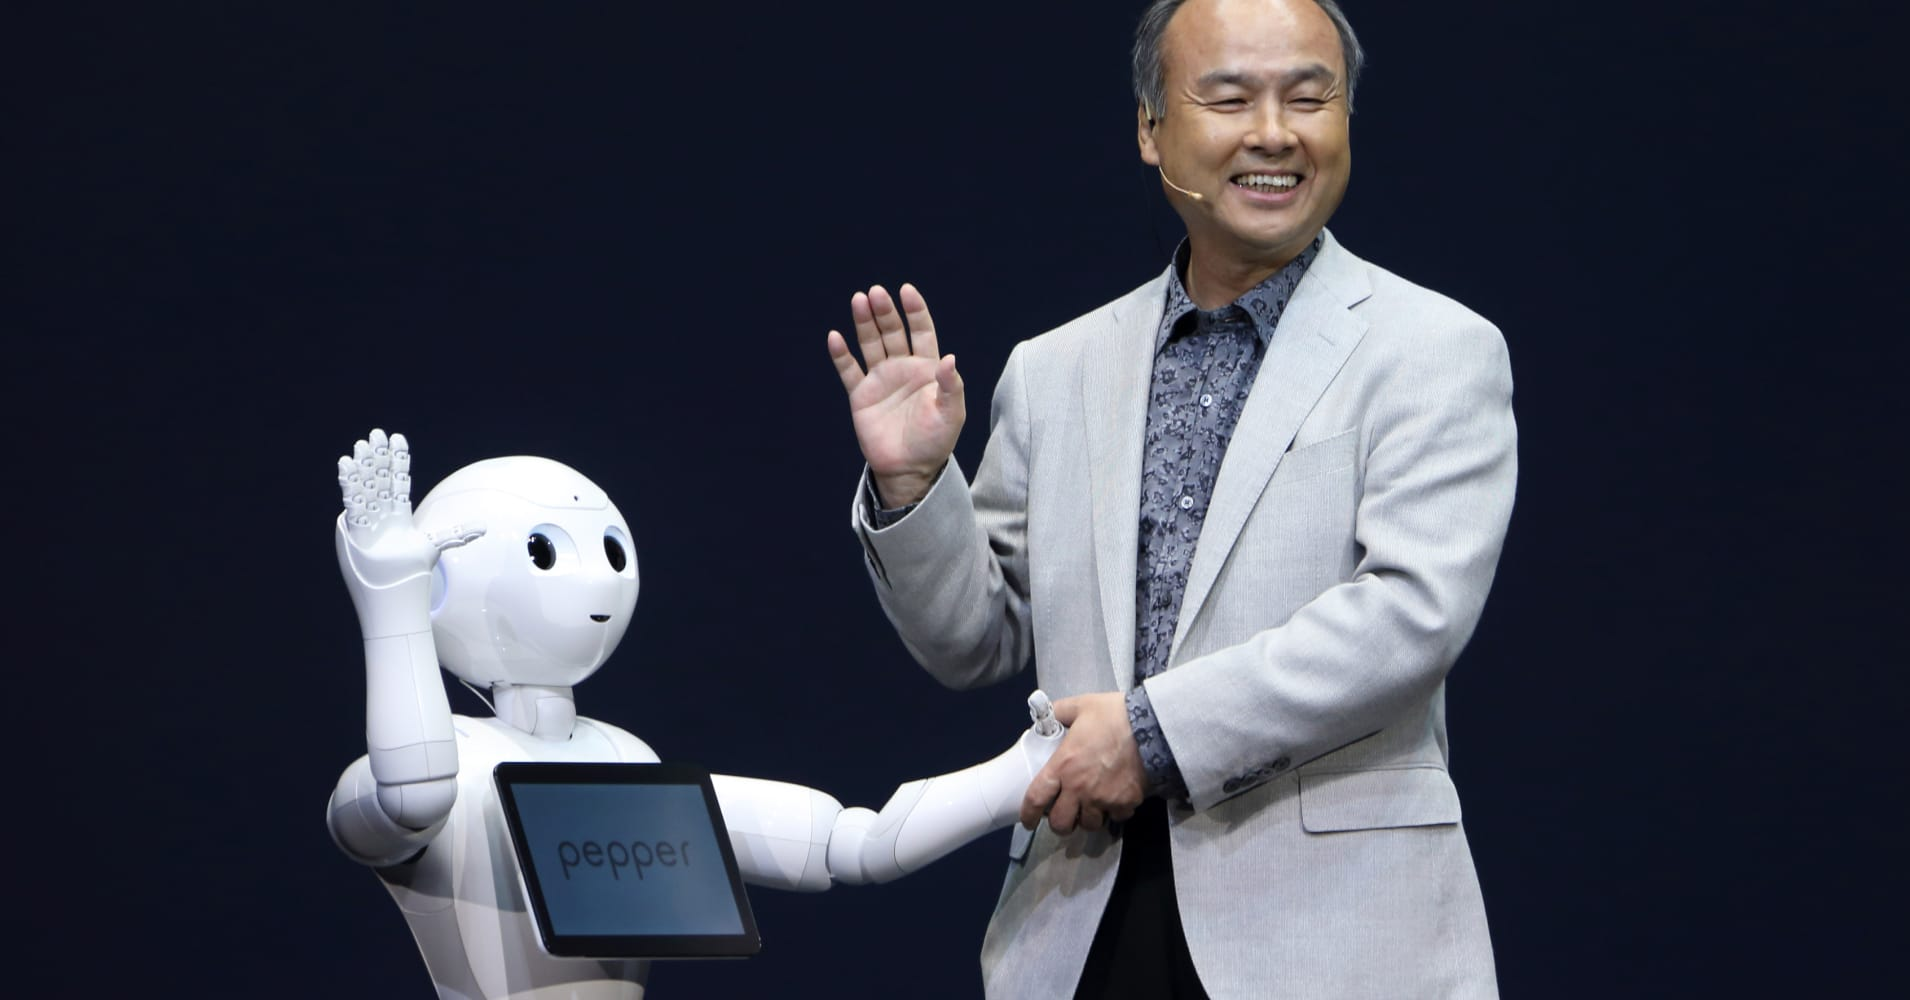 Masayoshi Son Ceo Of Softbank Robots Will Have An Iq Of 10 000